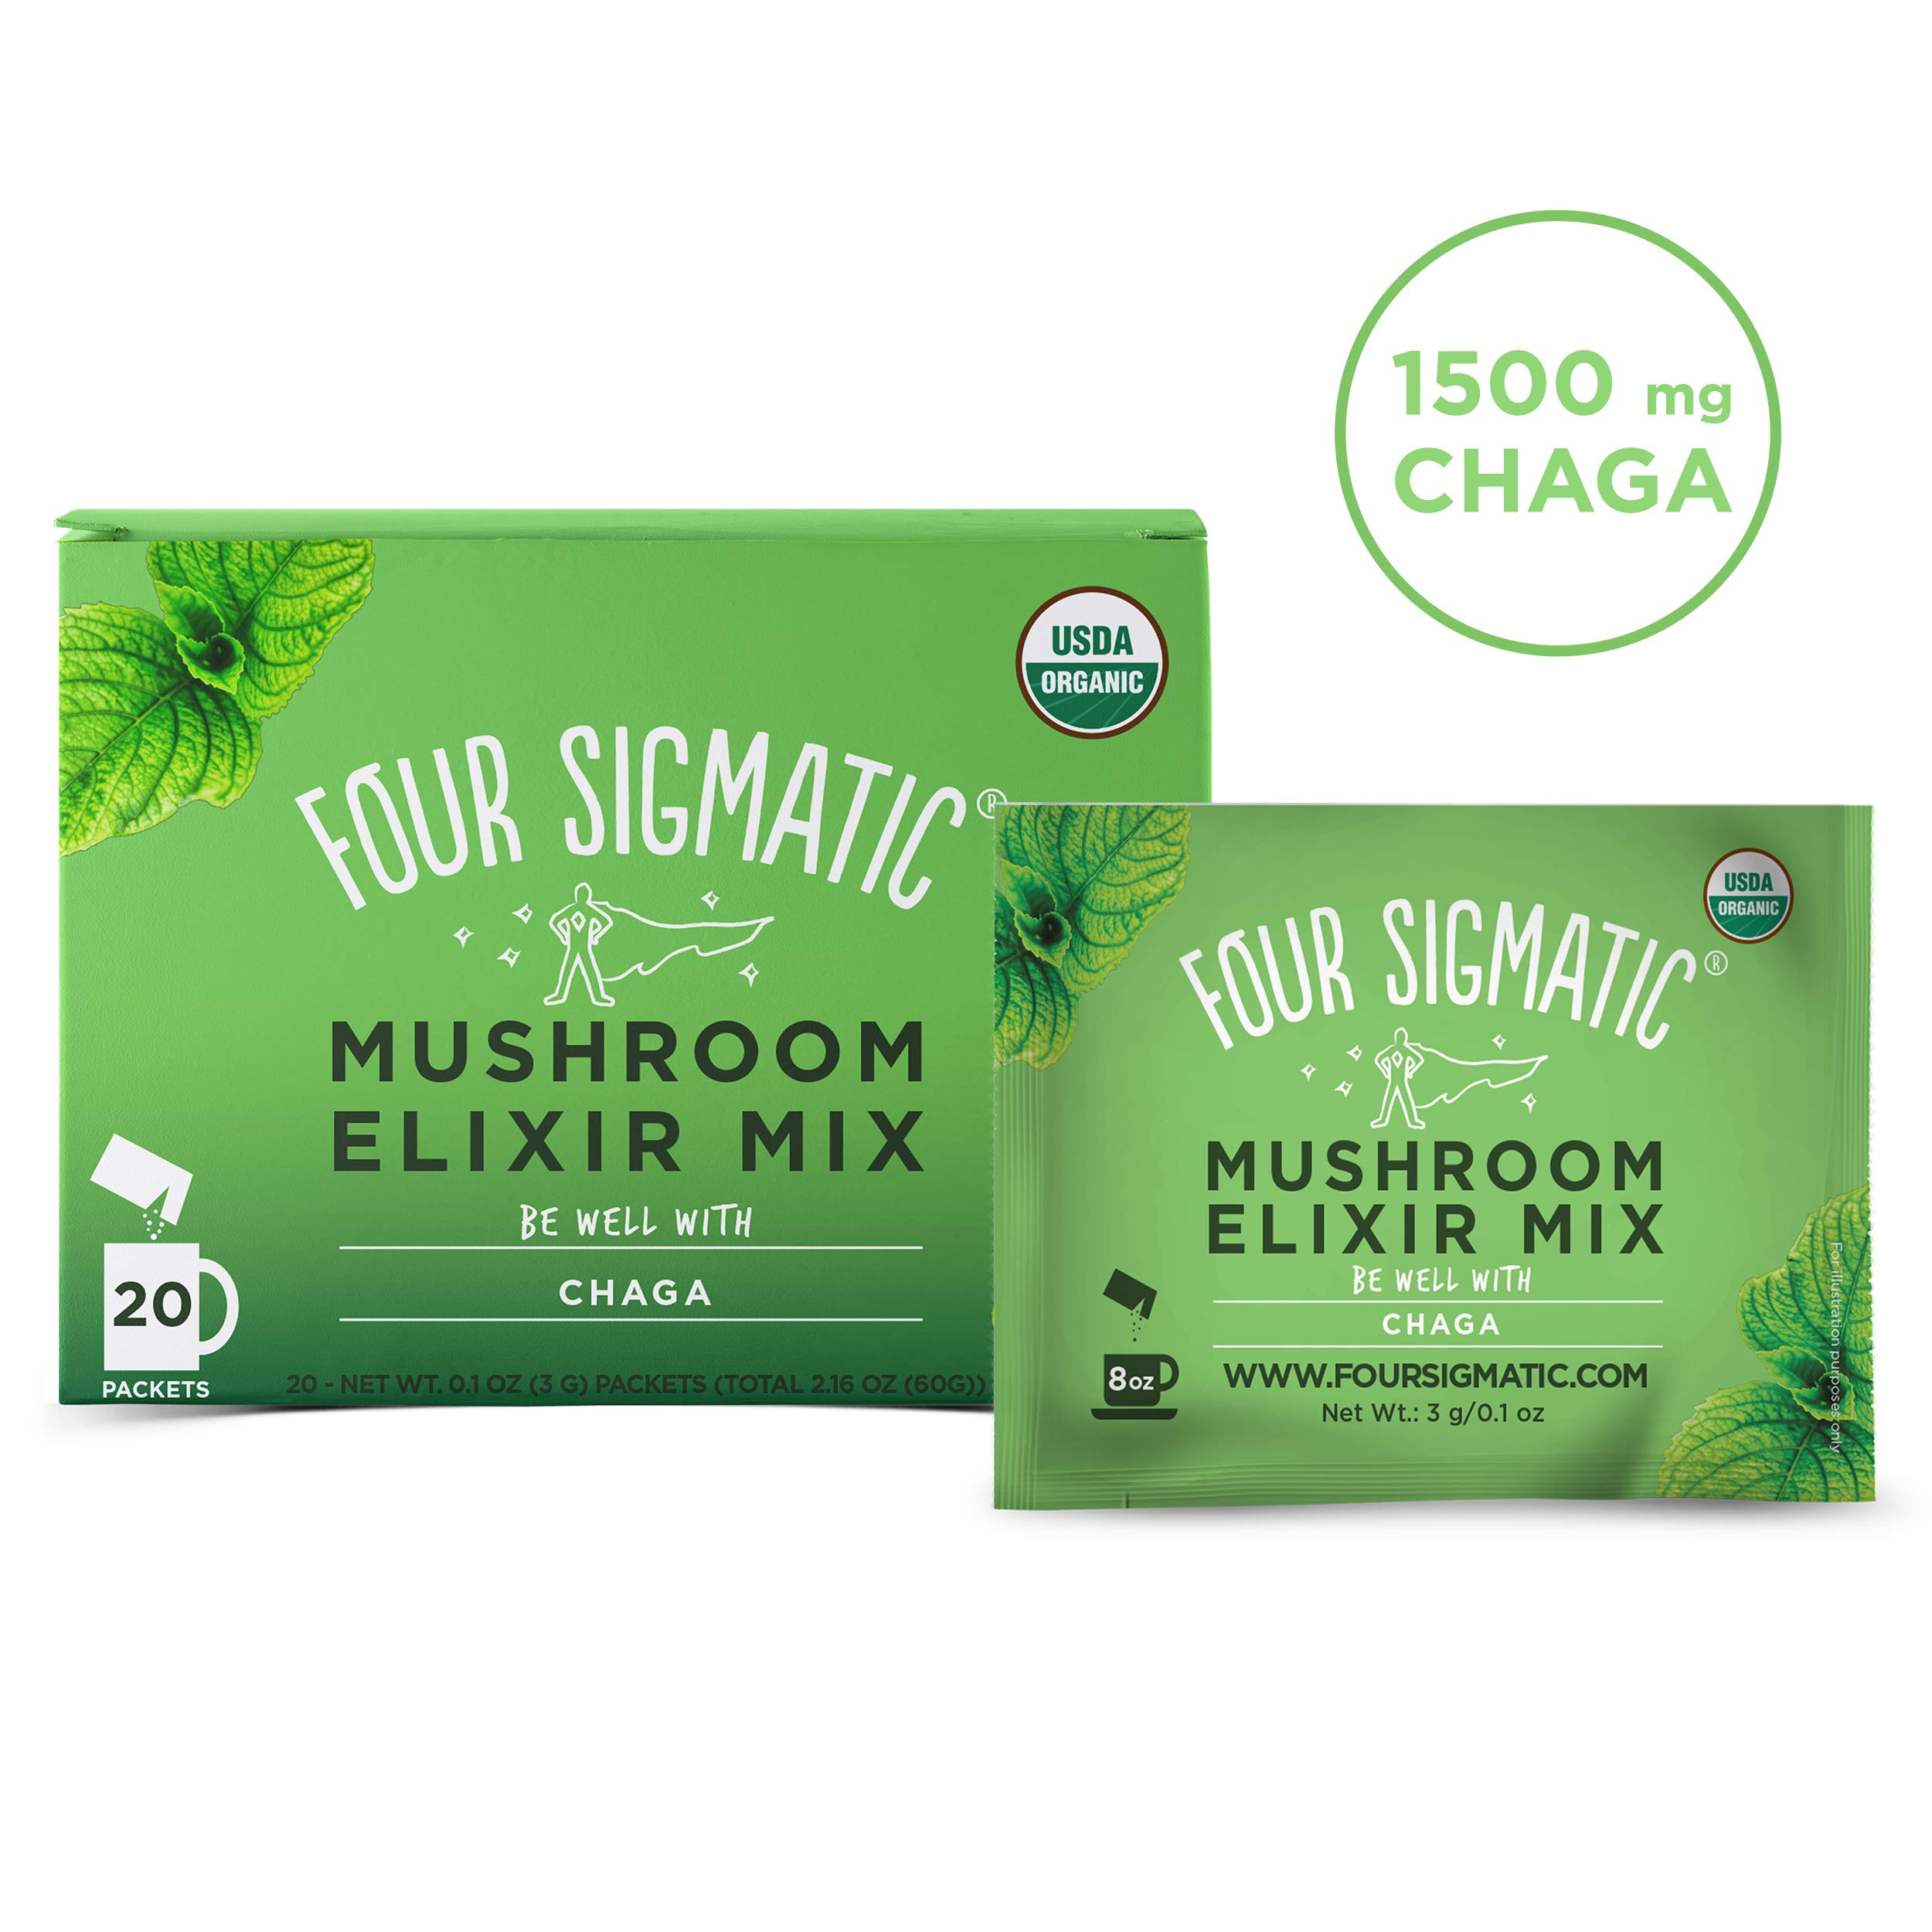 Four Sigmatic Chaga Mushroom Elixir - USDA Organic Chaga Mushroom Powder - Wellness, Immunity - Vegan, Paleo - 20 Count by Four Sigma Foods